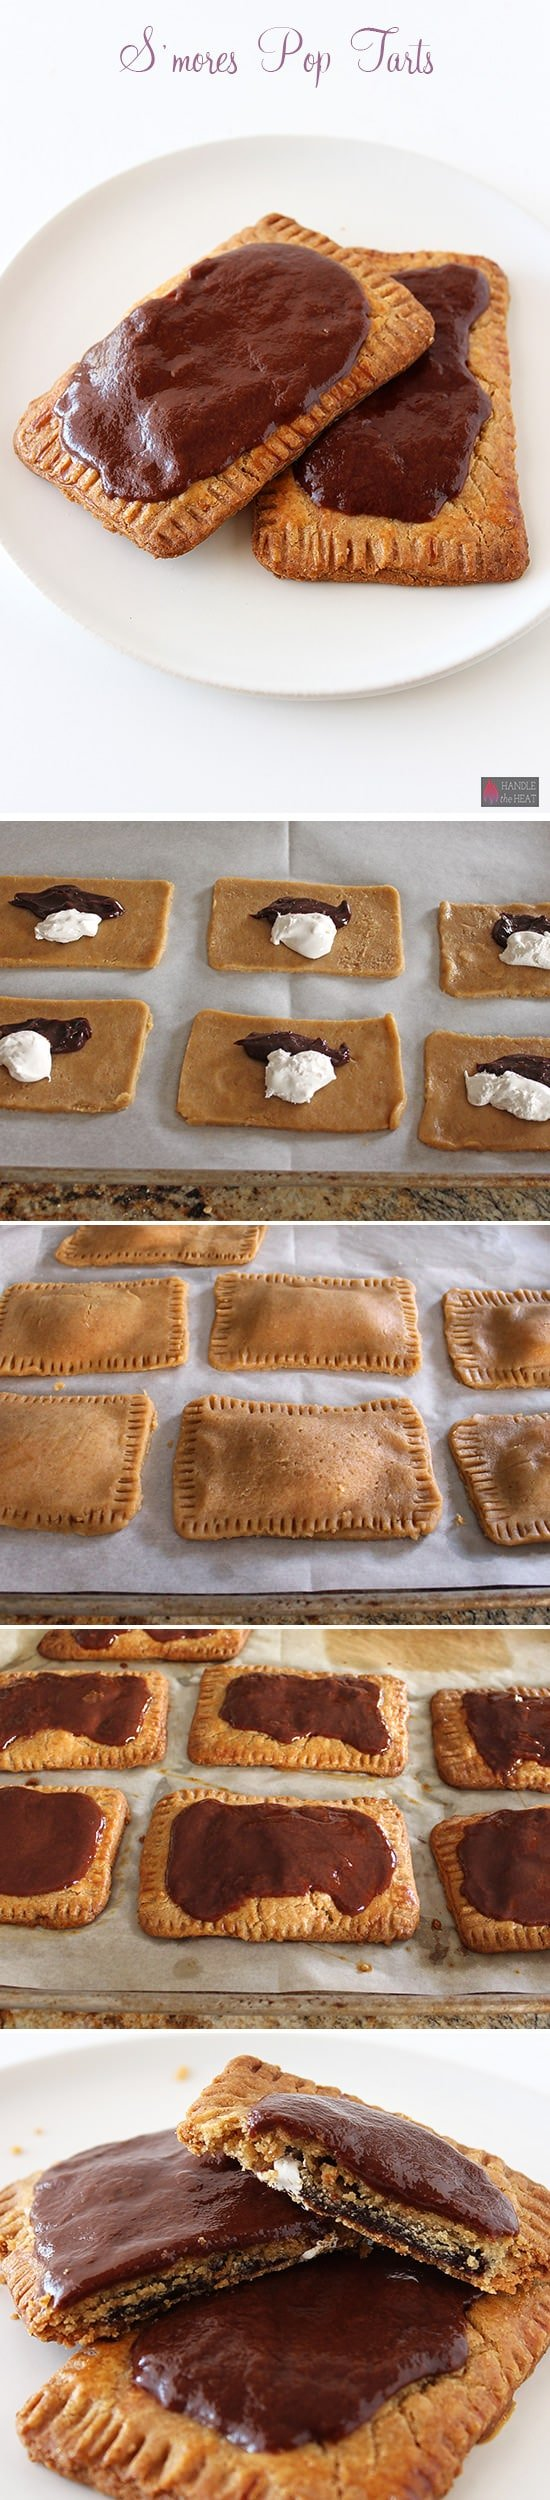 Homemade S'mores Pop Tarts - Handle the Heat